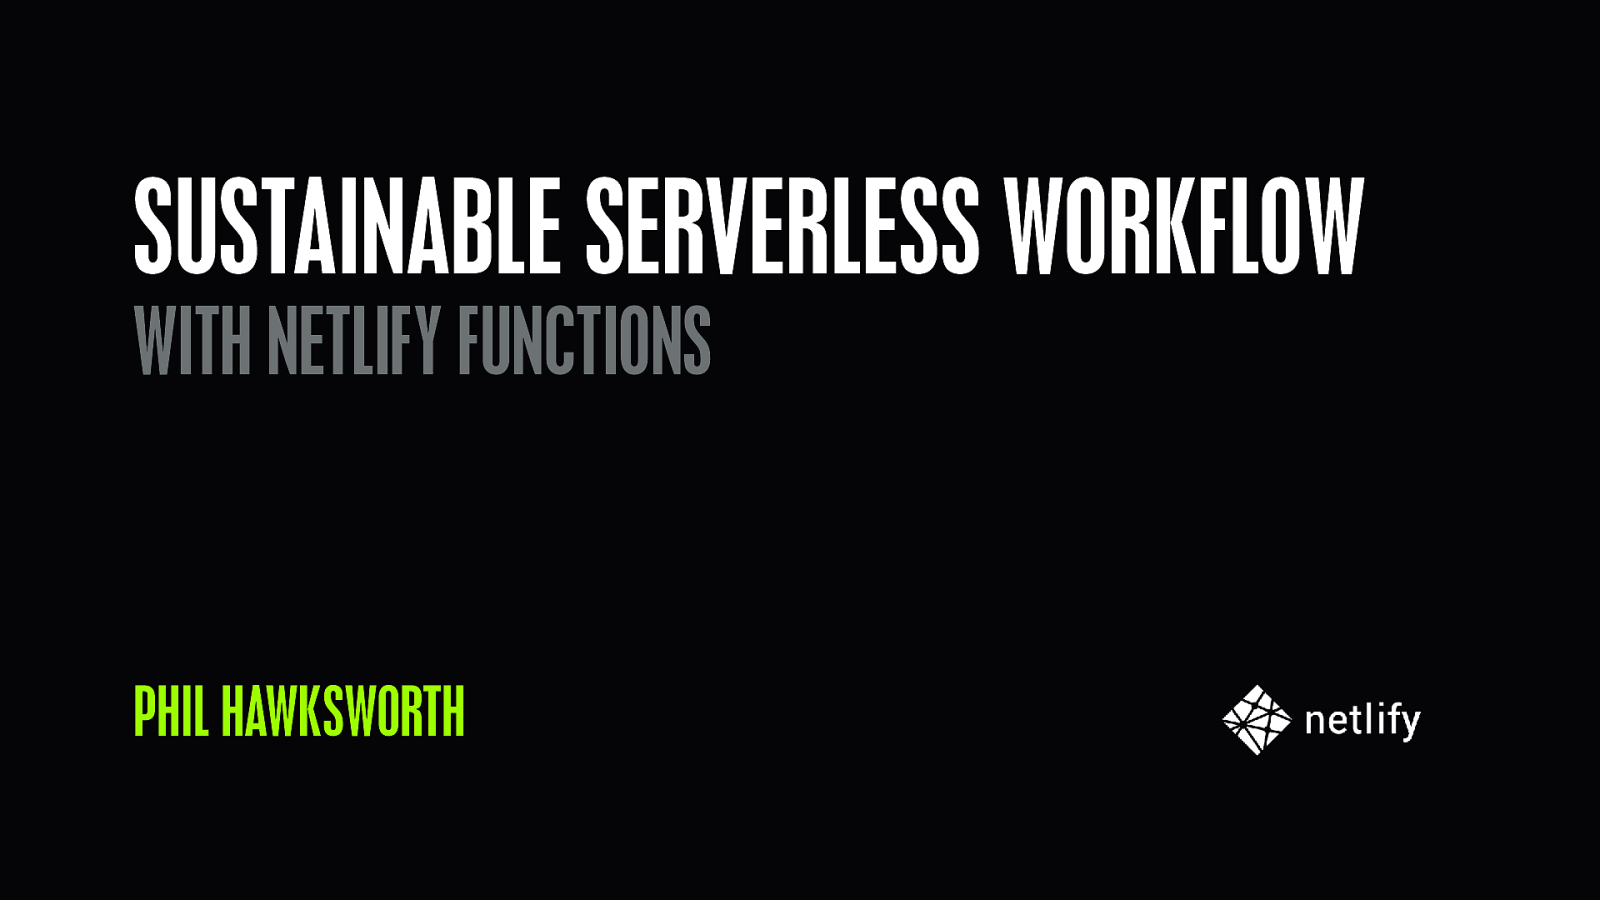 Sustainable serverless workflows with Netlify Functions